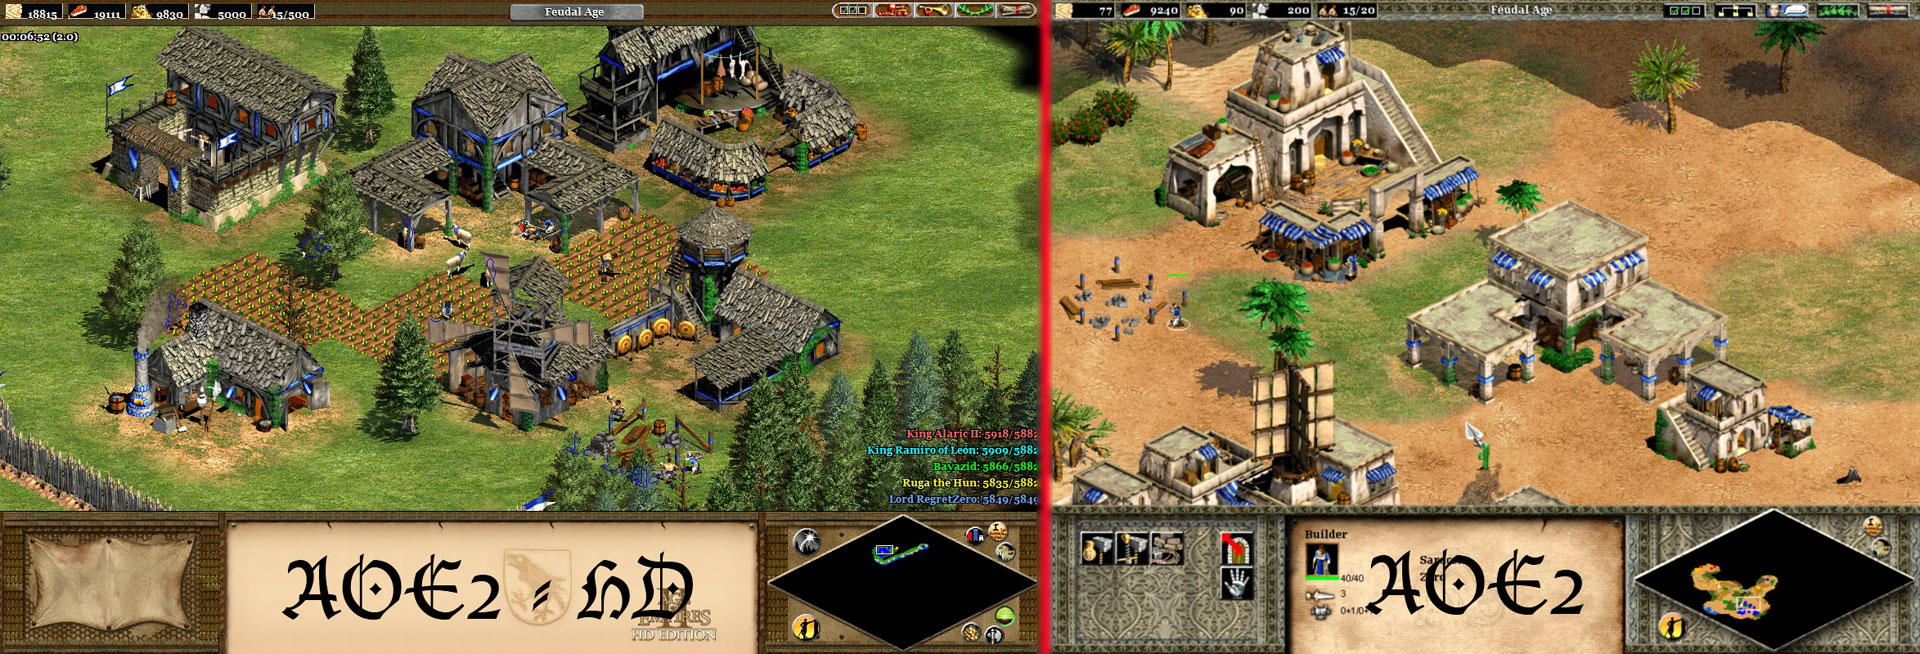 http://www.manapool.co.uk/wp-content/uploads/2014/08/AgeofEmpires2Comparison.jpg